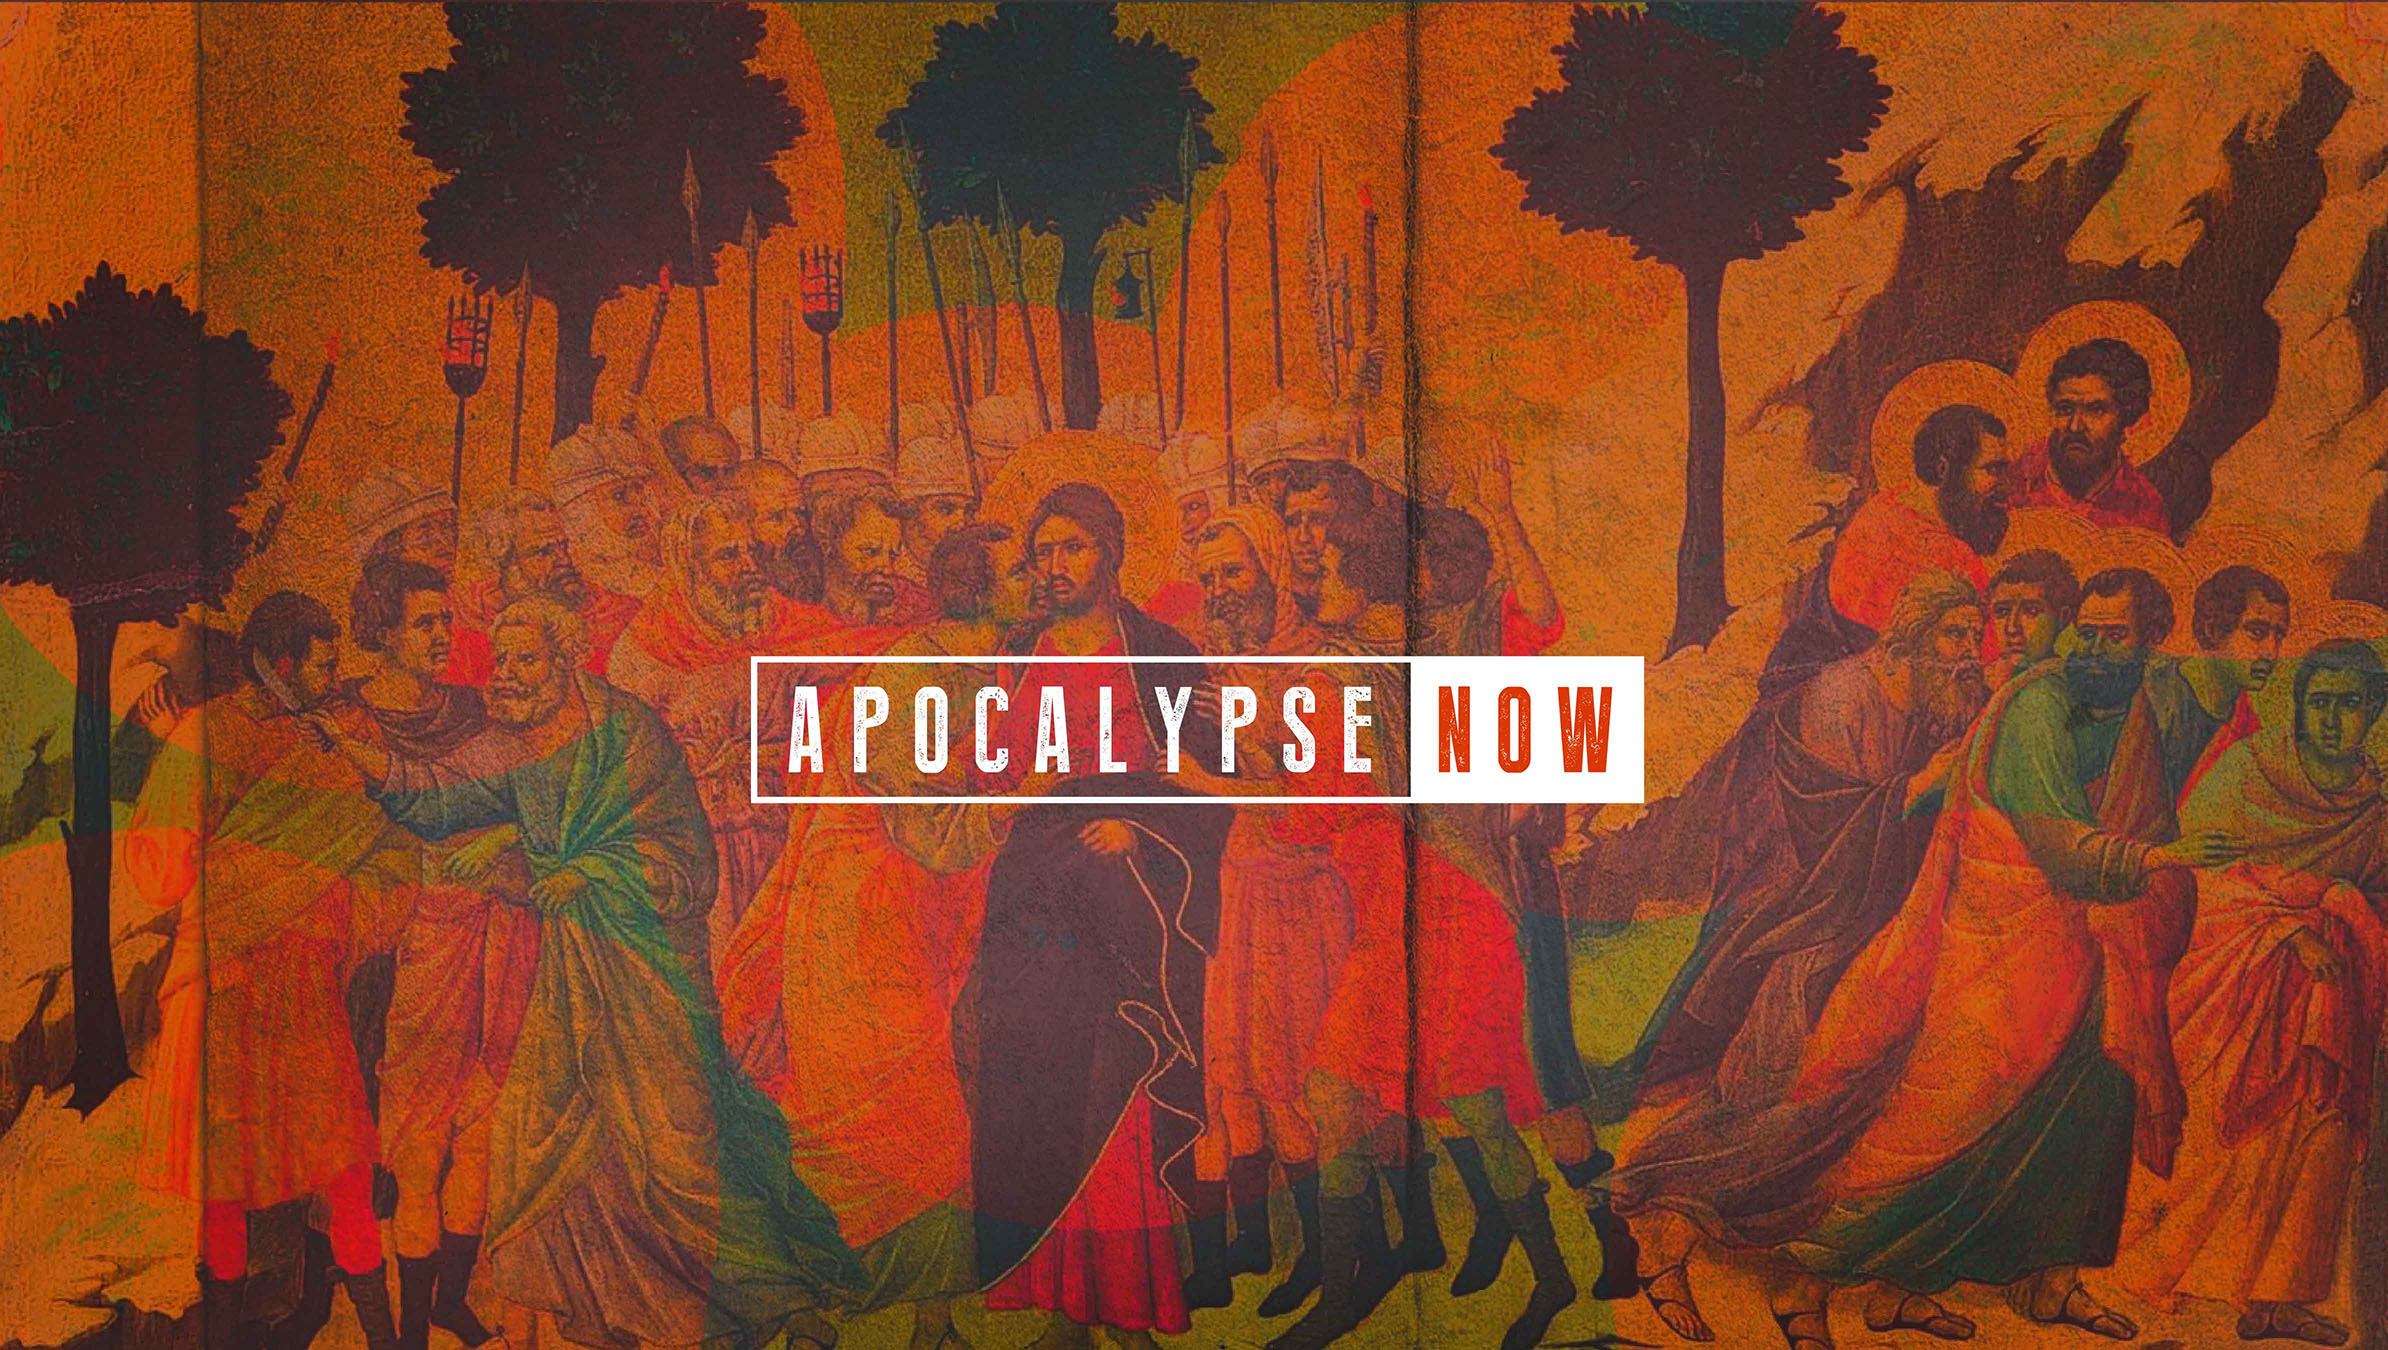 Apocalypse Now: Pro Life in All Life